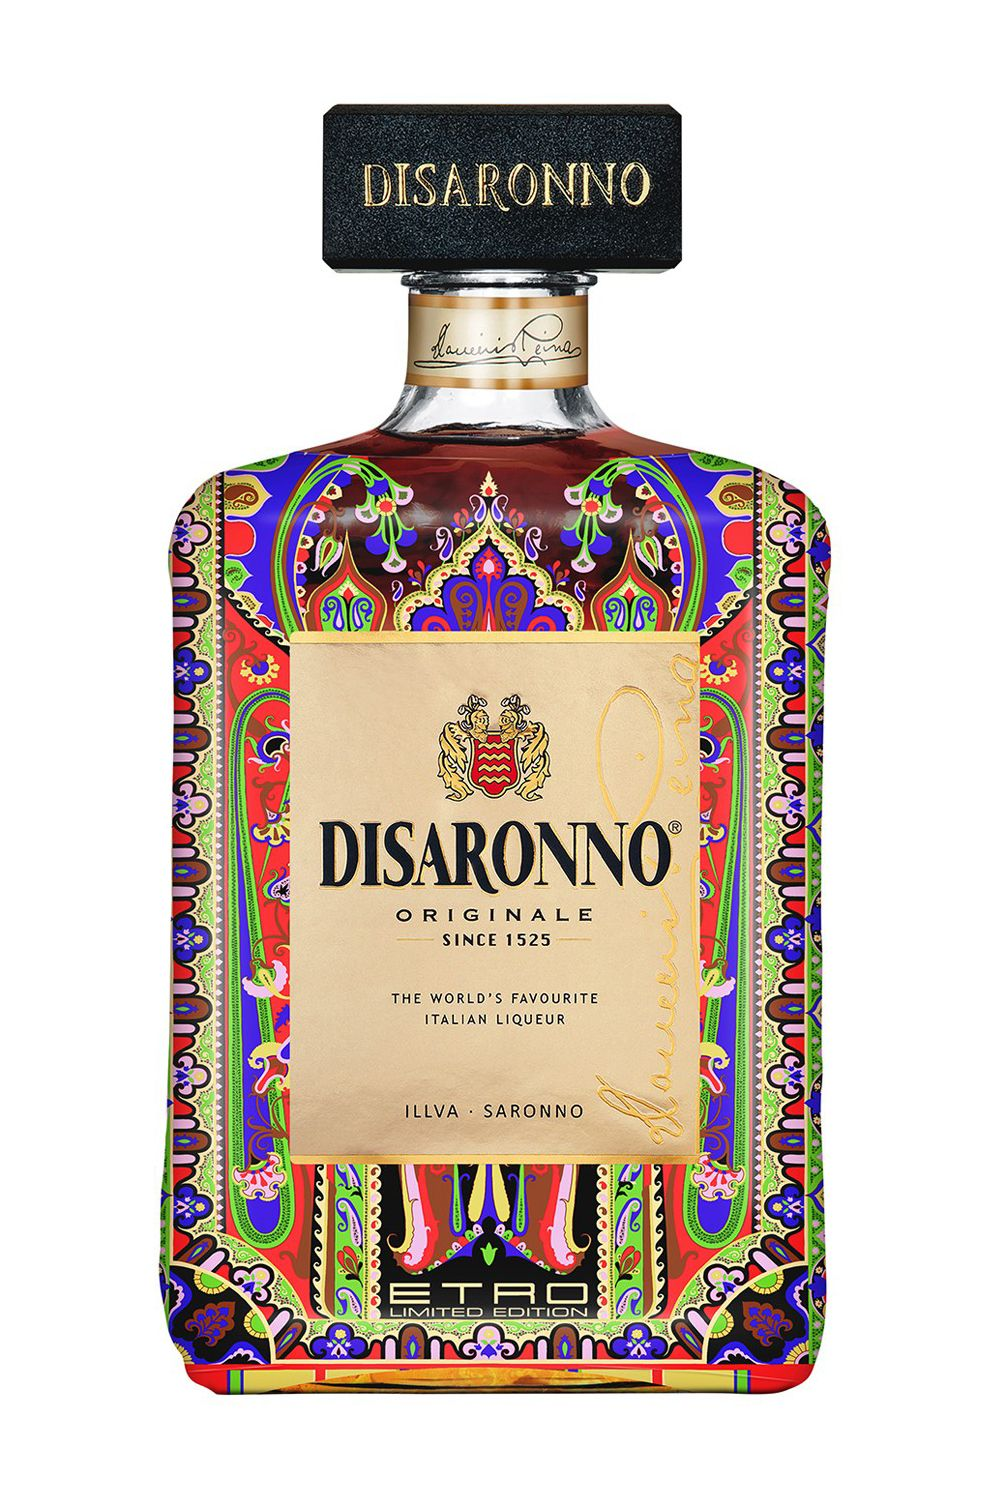 <p>The limited edition Disarrono x Etro collaboration is a definite *get* for your bar cart. (Pssst…the fashion designer collaboration is also available in six mini-bottles, packaged as 3-packs. Stocking stuffer, anyone?)</p>